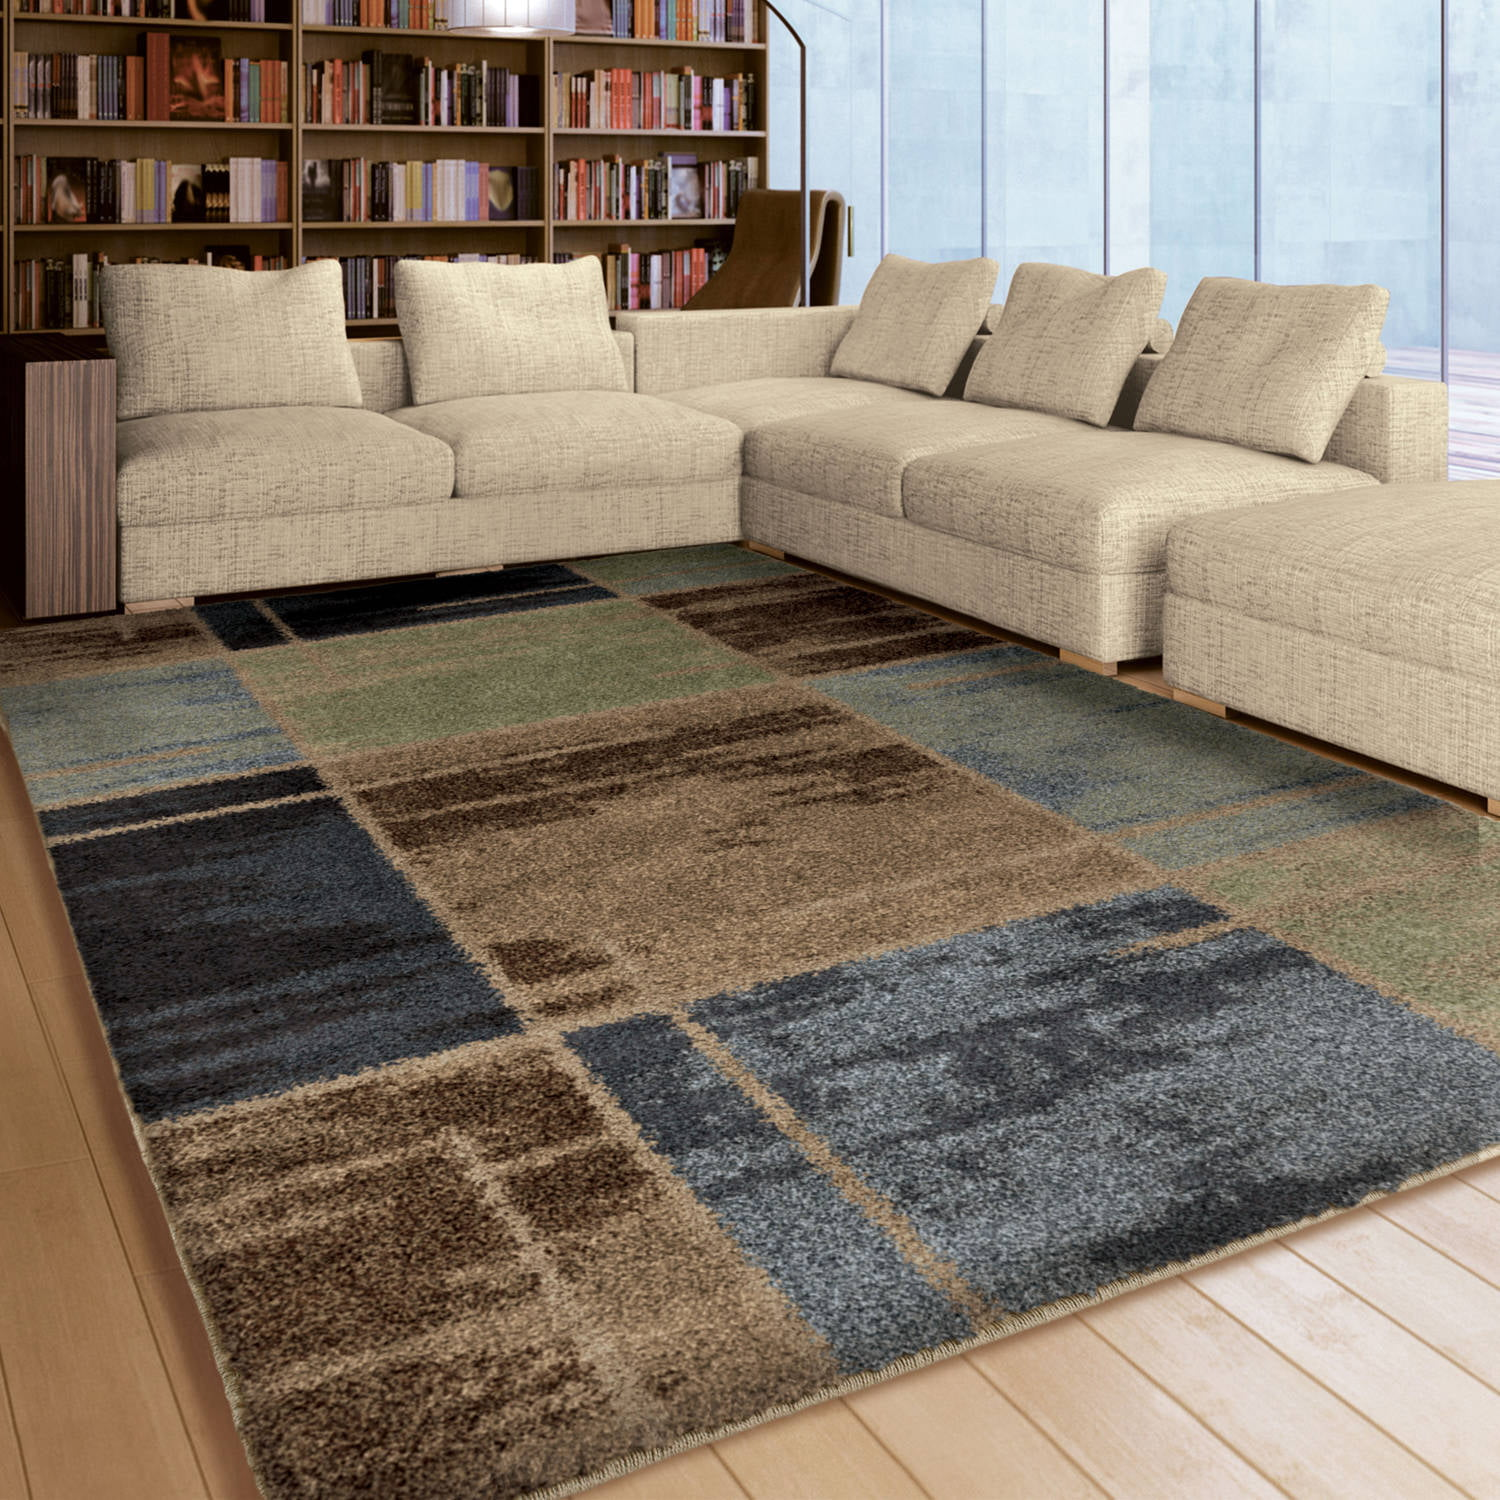 plush white rugs pin area rug pinterest dorm bedrooms room and fuzzy